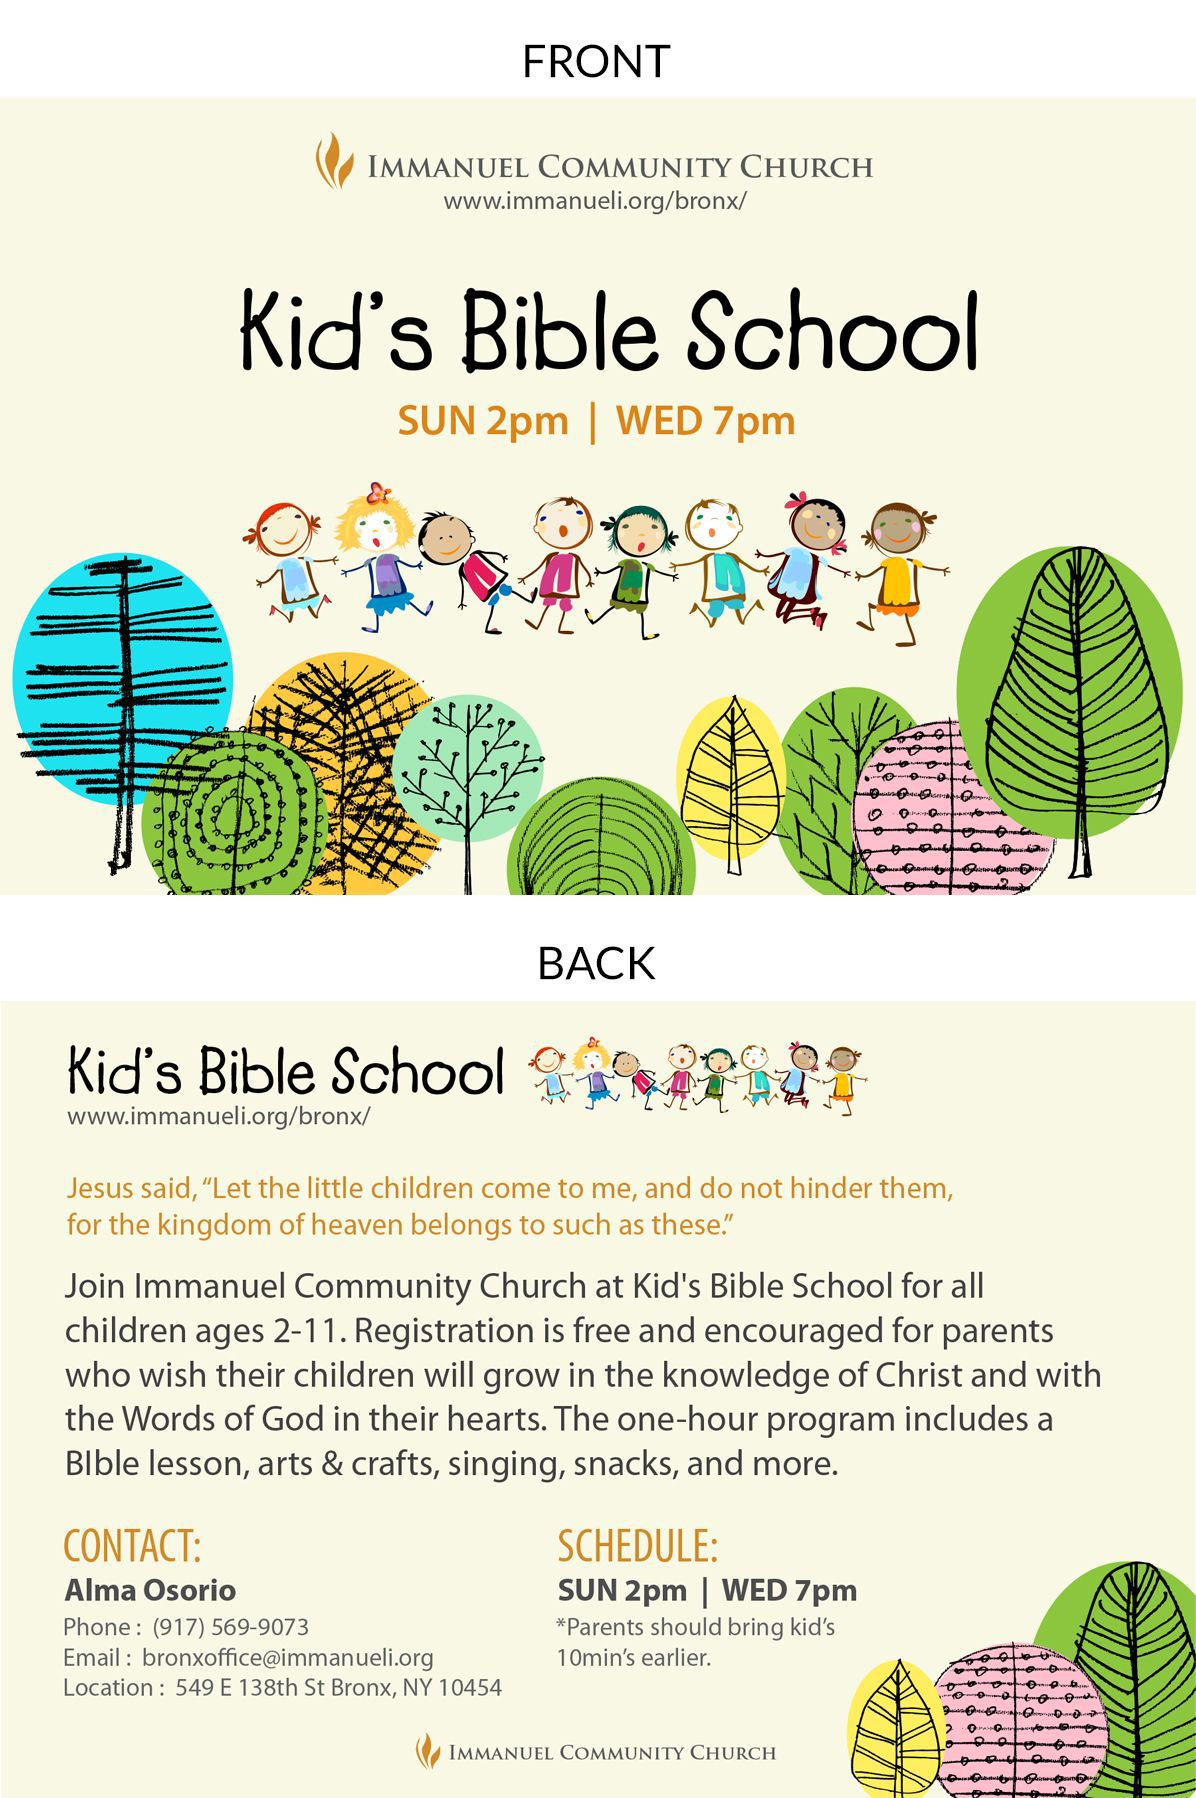 007 Awful Free Sunday School Flyer Template High Resolution  TemplatesFull